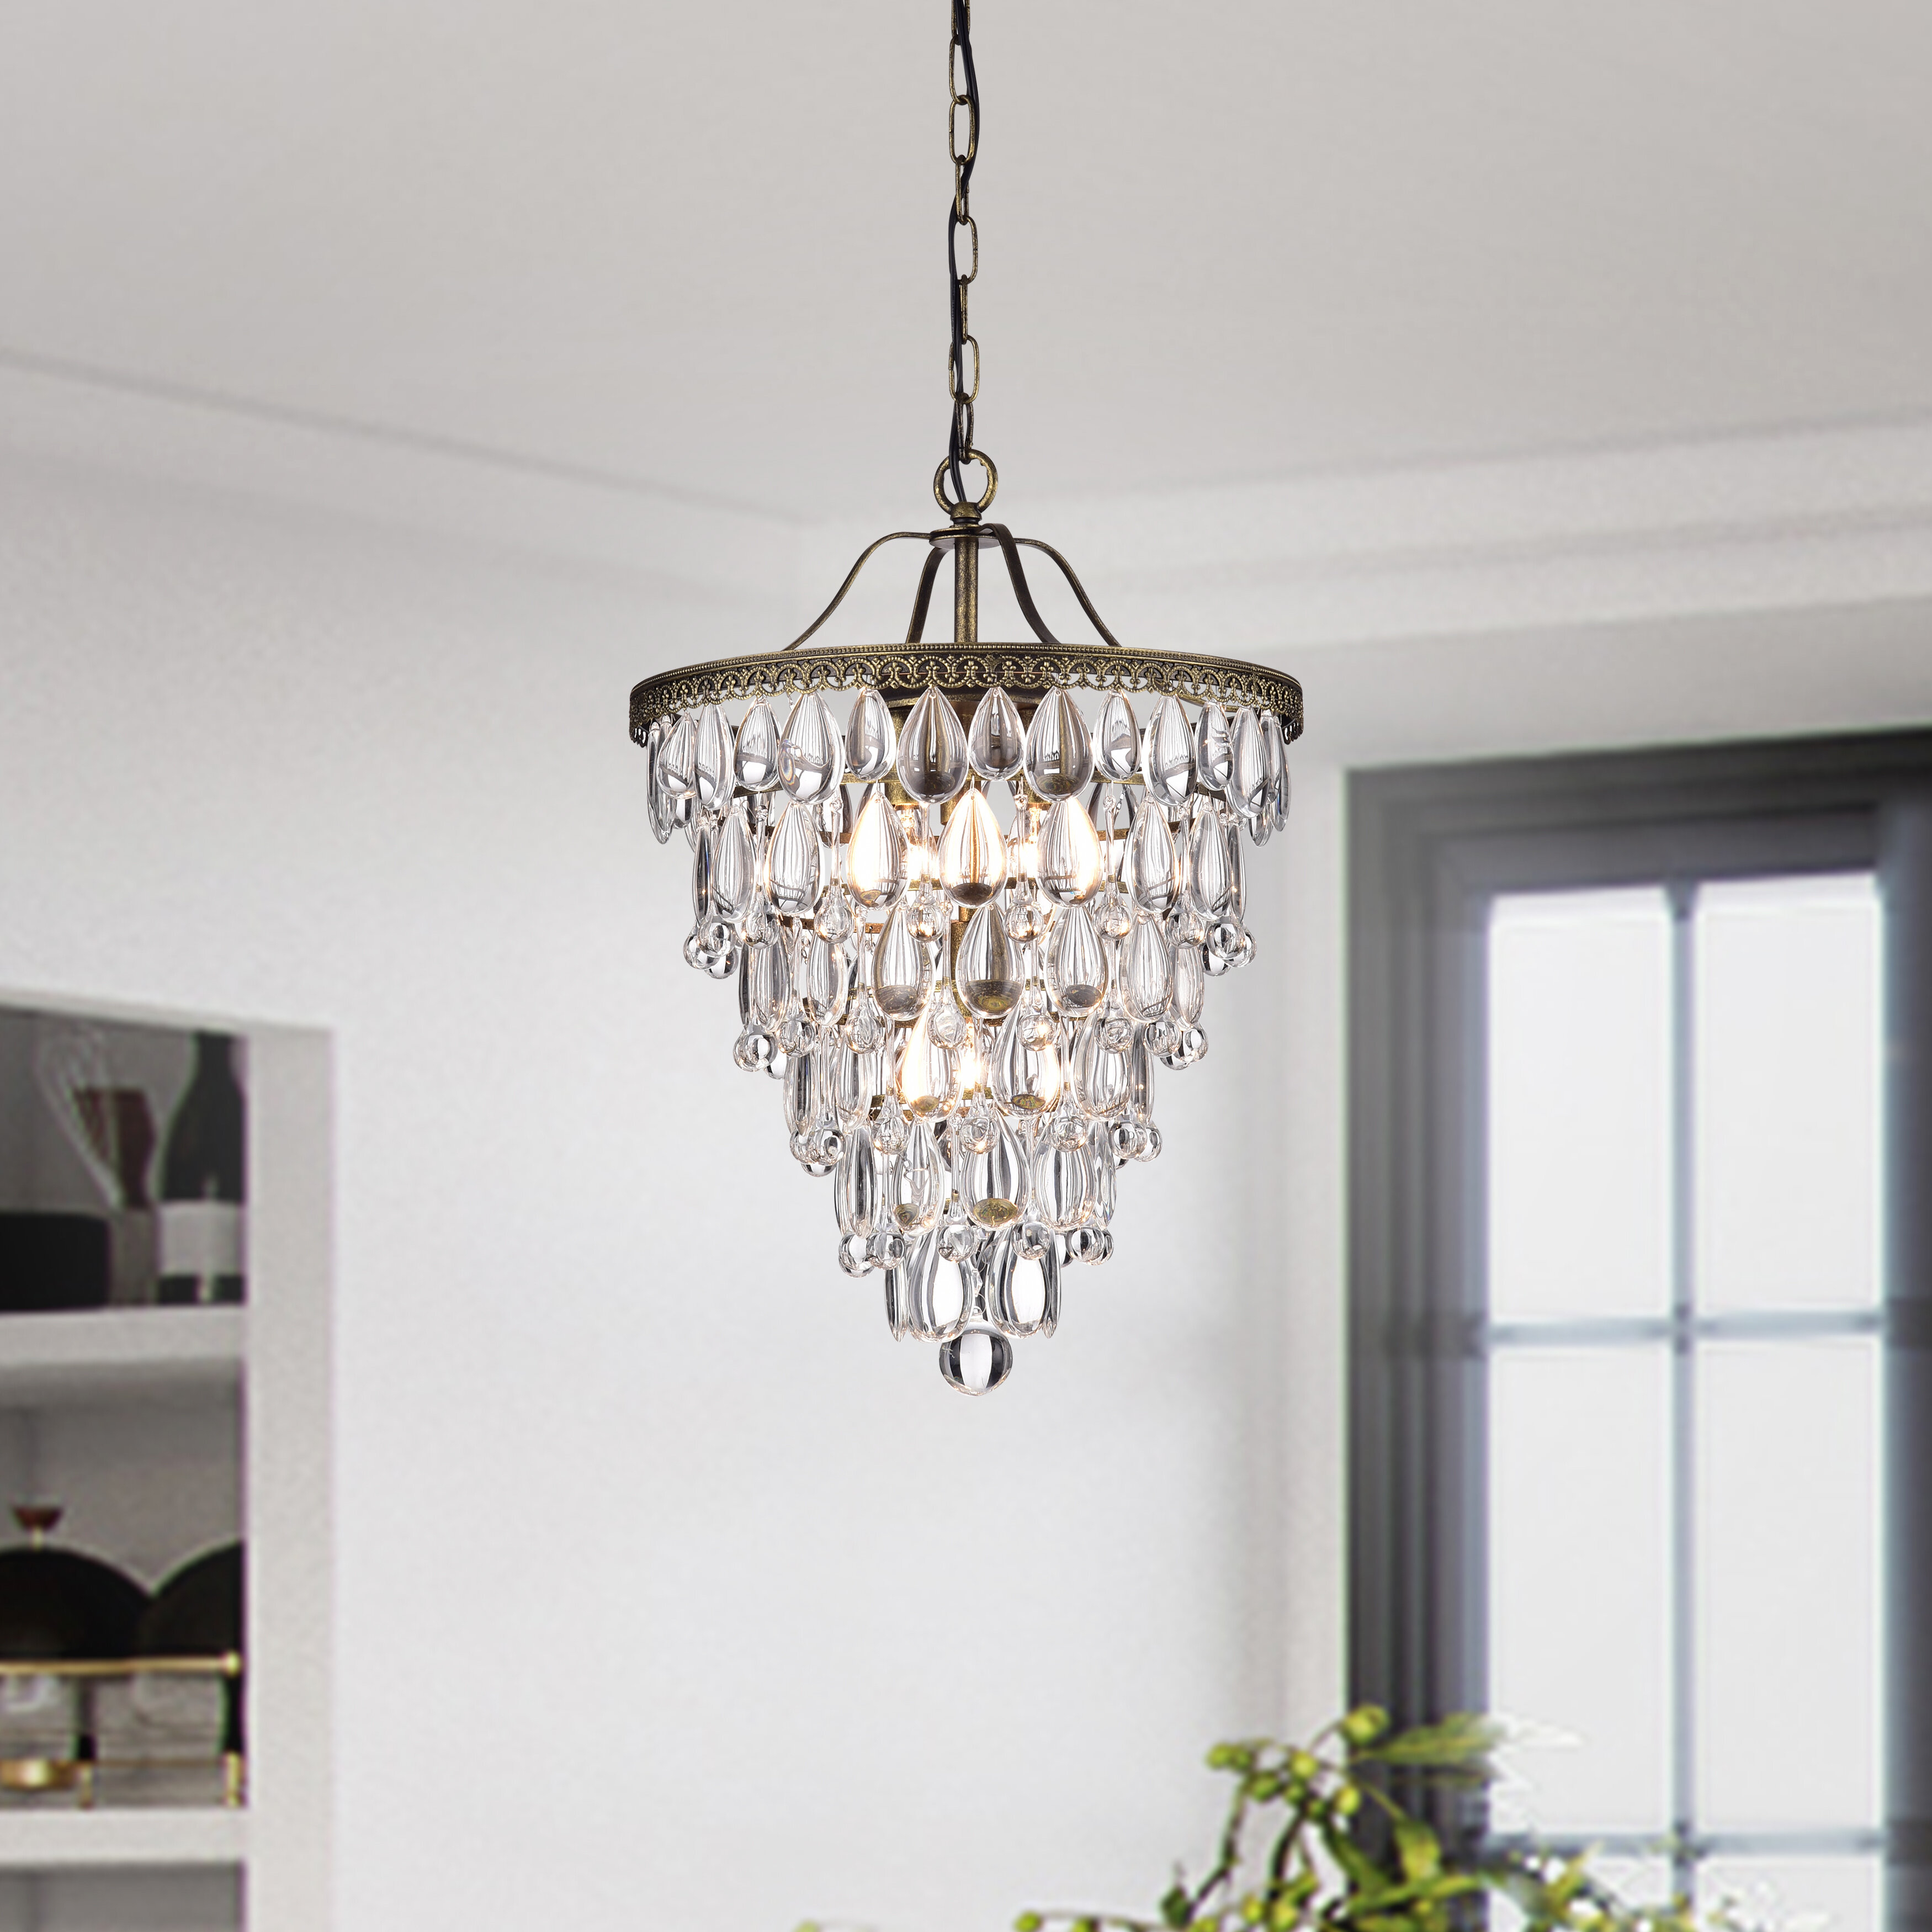 Totnes 4 Light Crystal Chandelier Within Bramers 6 Light Novelty Chandeliers (View 16 of 30)